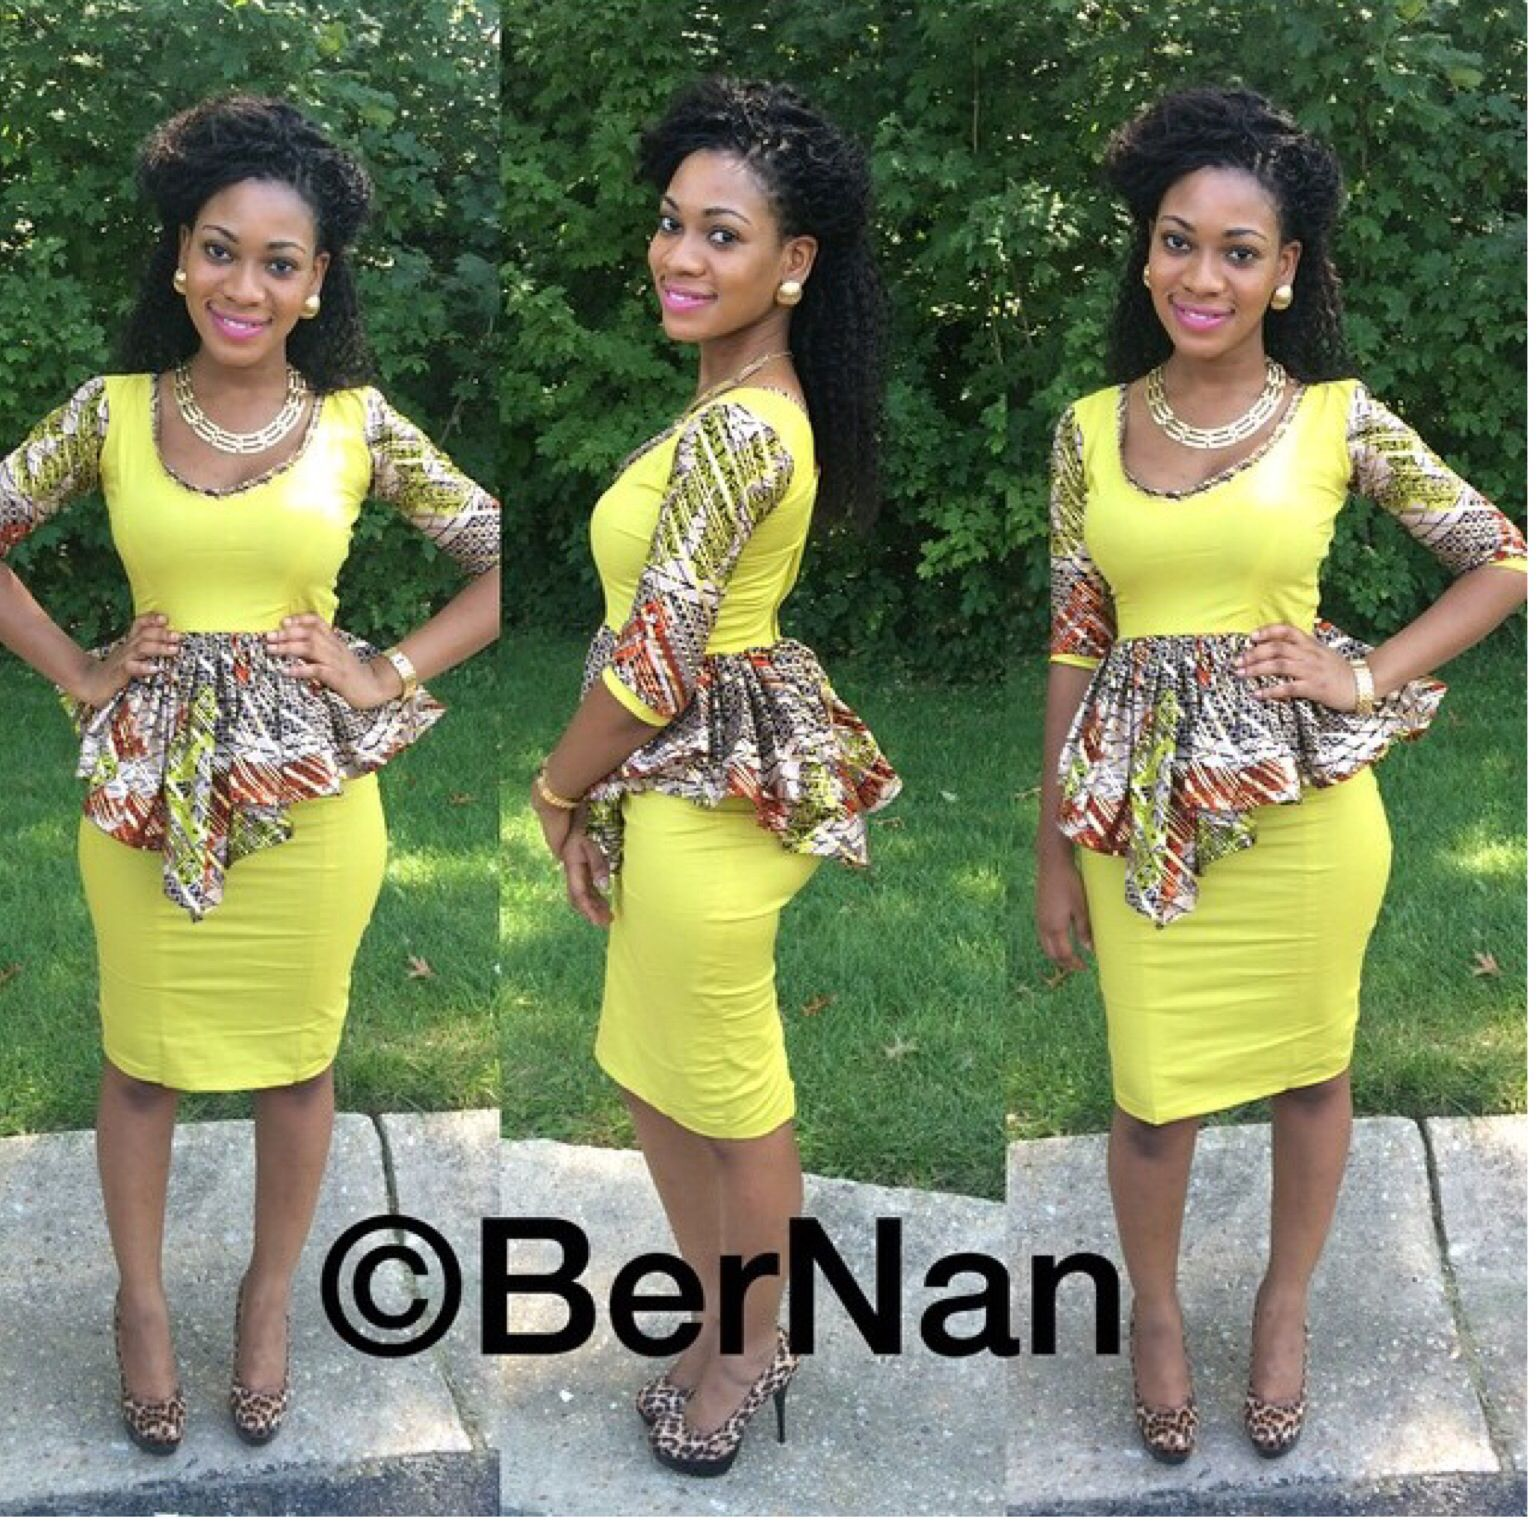 Bernan Clothing African Fashion Ankara Kitenge African Women Dresses African Prints